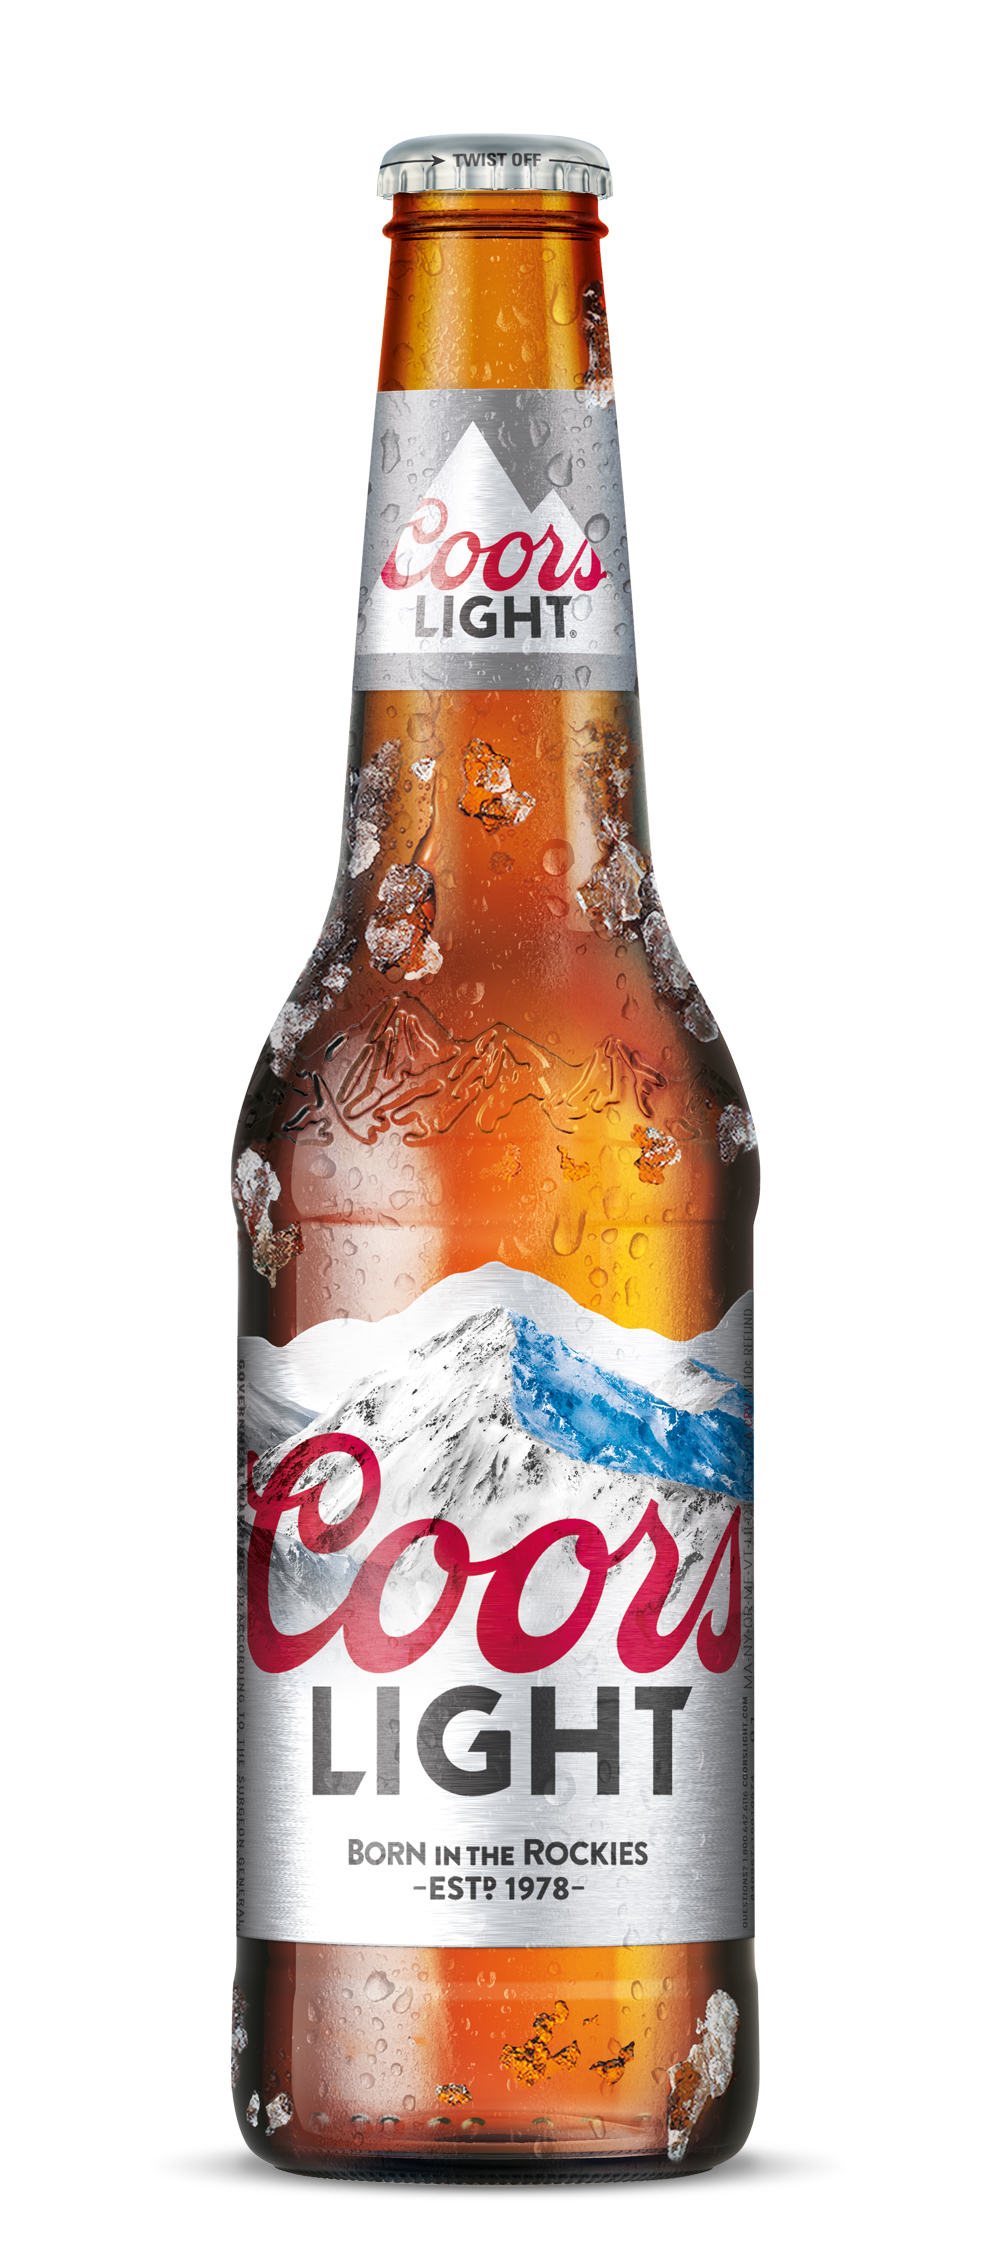 Turner Duckworth rebrands Coors Light - Design Week